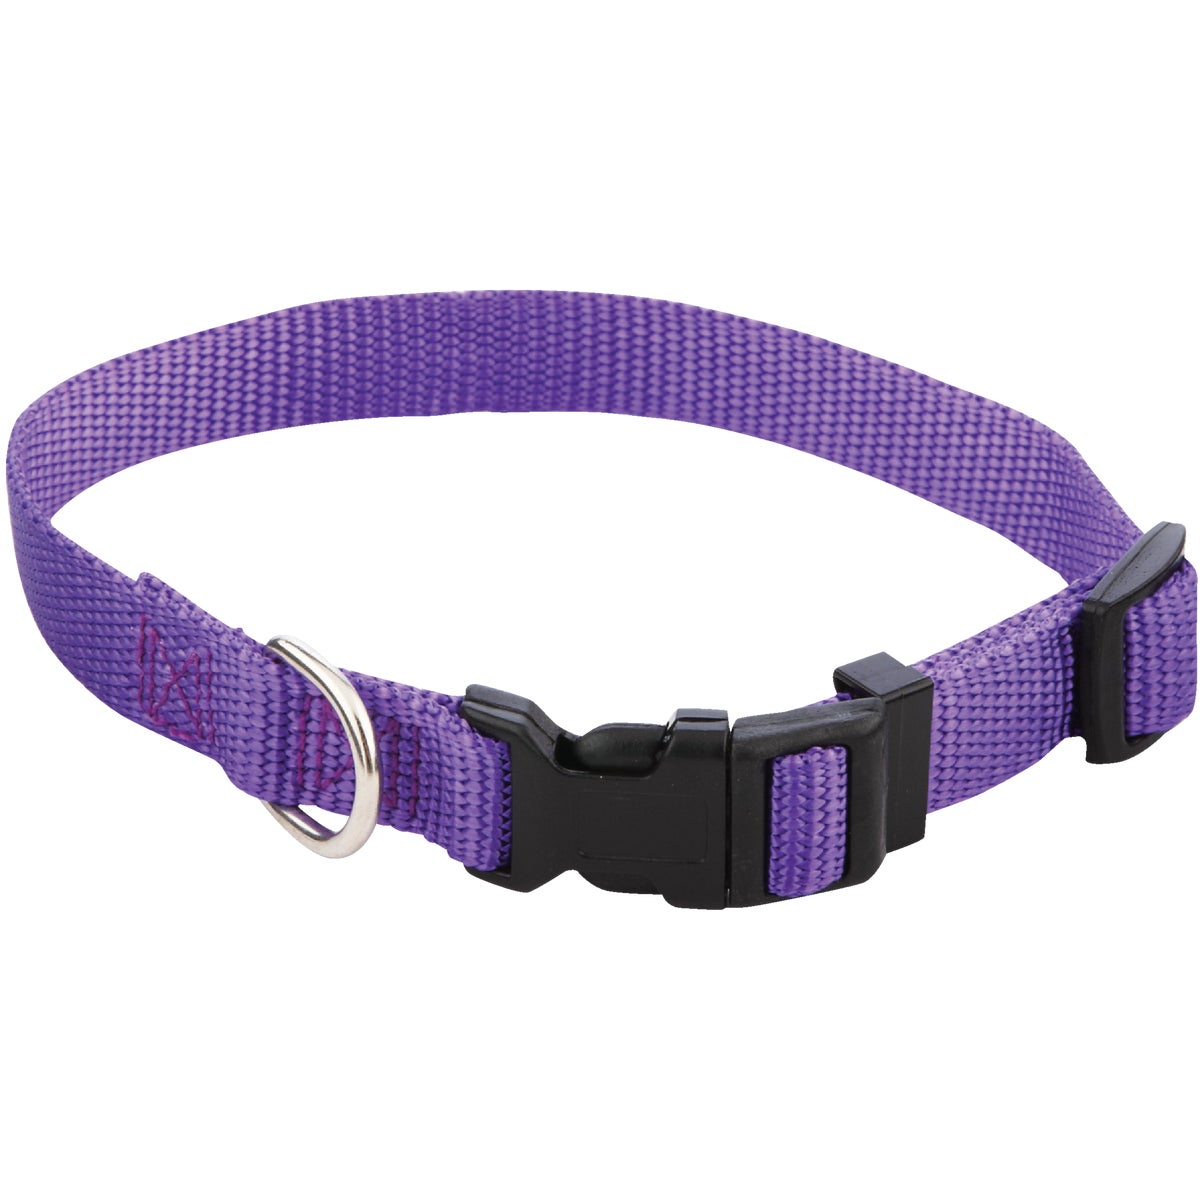 5/8X10-16 FASHION COLLAR